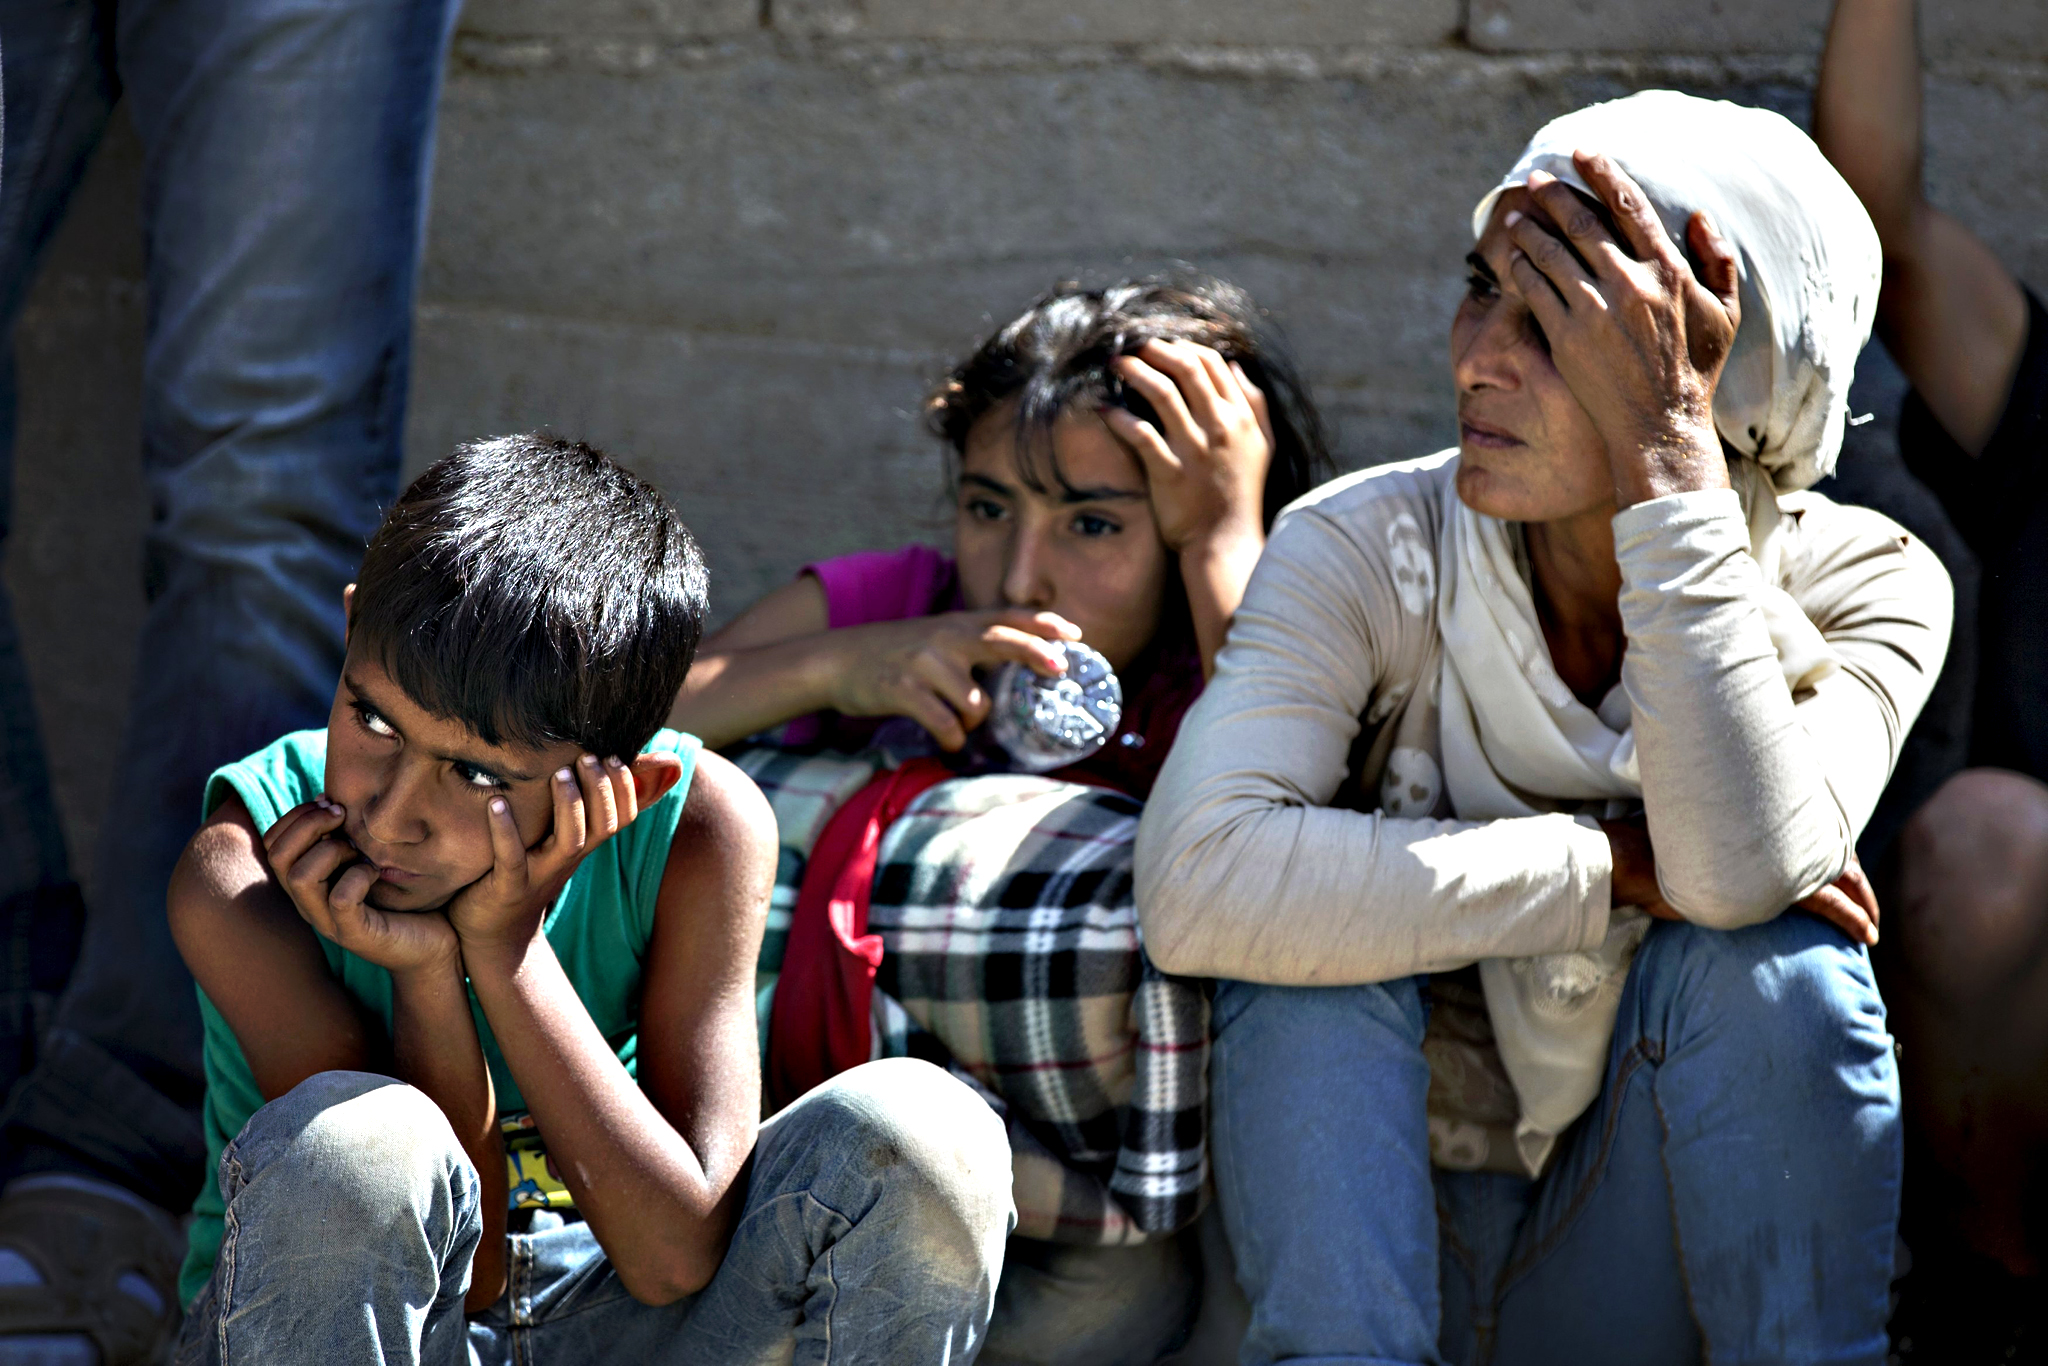 Migrants from Syria sit along a road as they wait for a bus in the village of Miratovac near the town of Presevo, Serbia August 24, 2015. Long lines of migrants, many of them refugees from Syria, snaked through southern Serbia by foot on Monday before jumping on trains and buses north to Hungary and the last leg of an increasingly desperate journey to western Europe